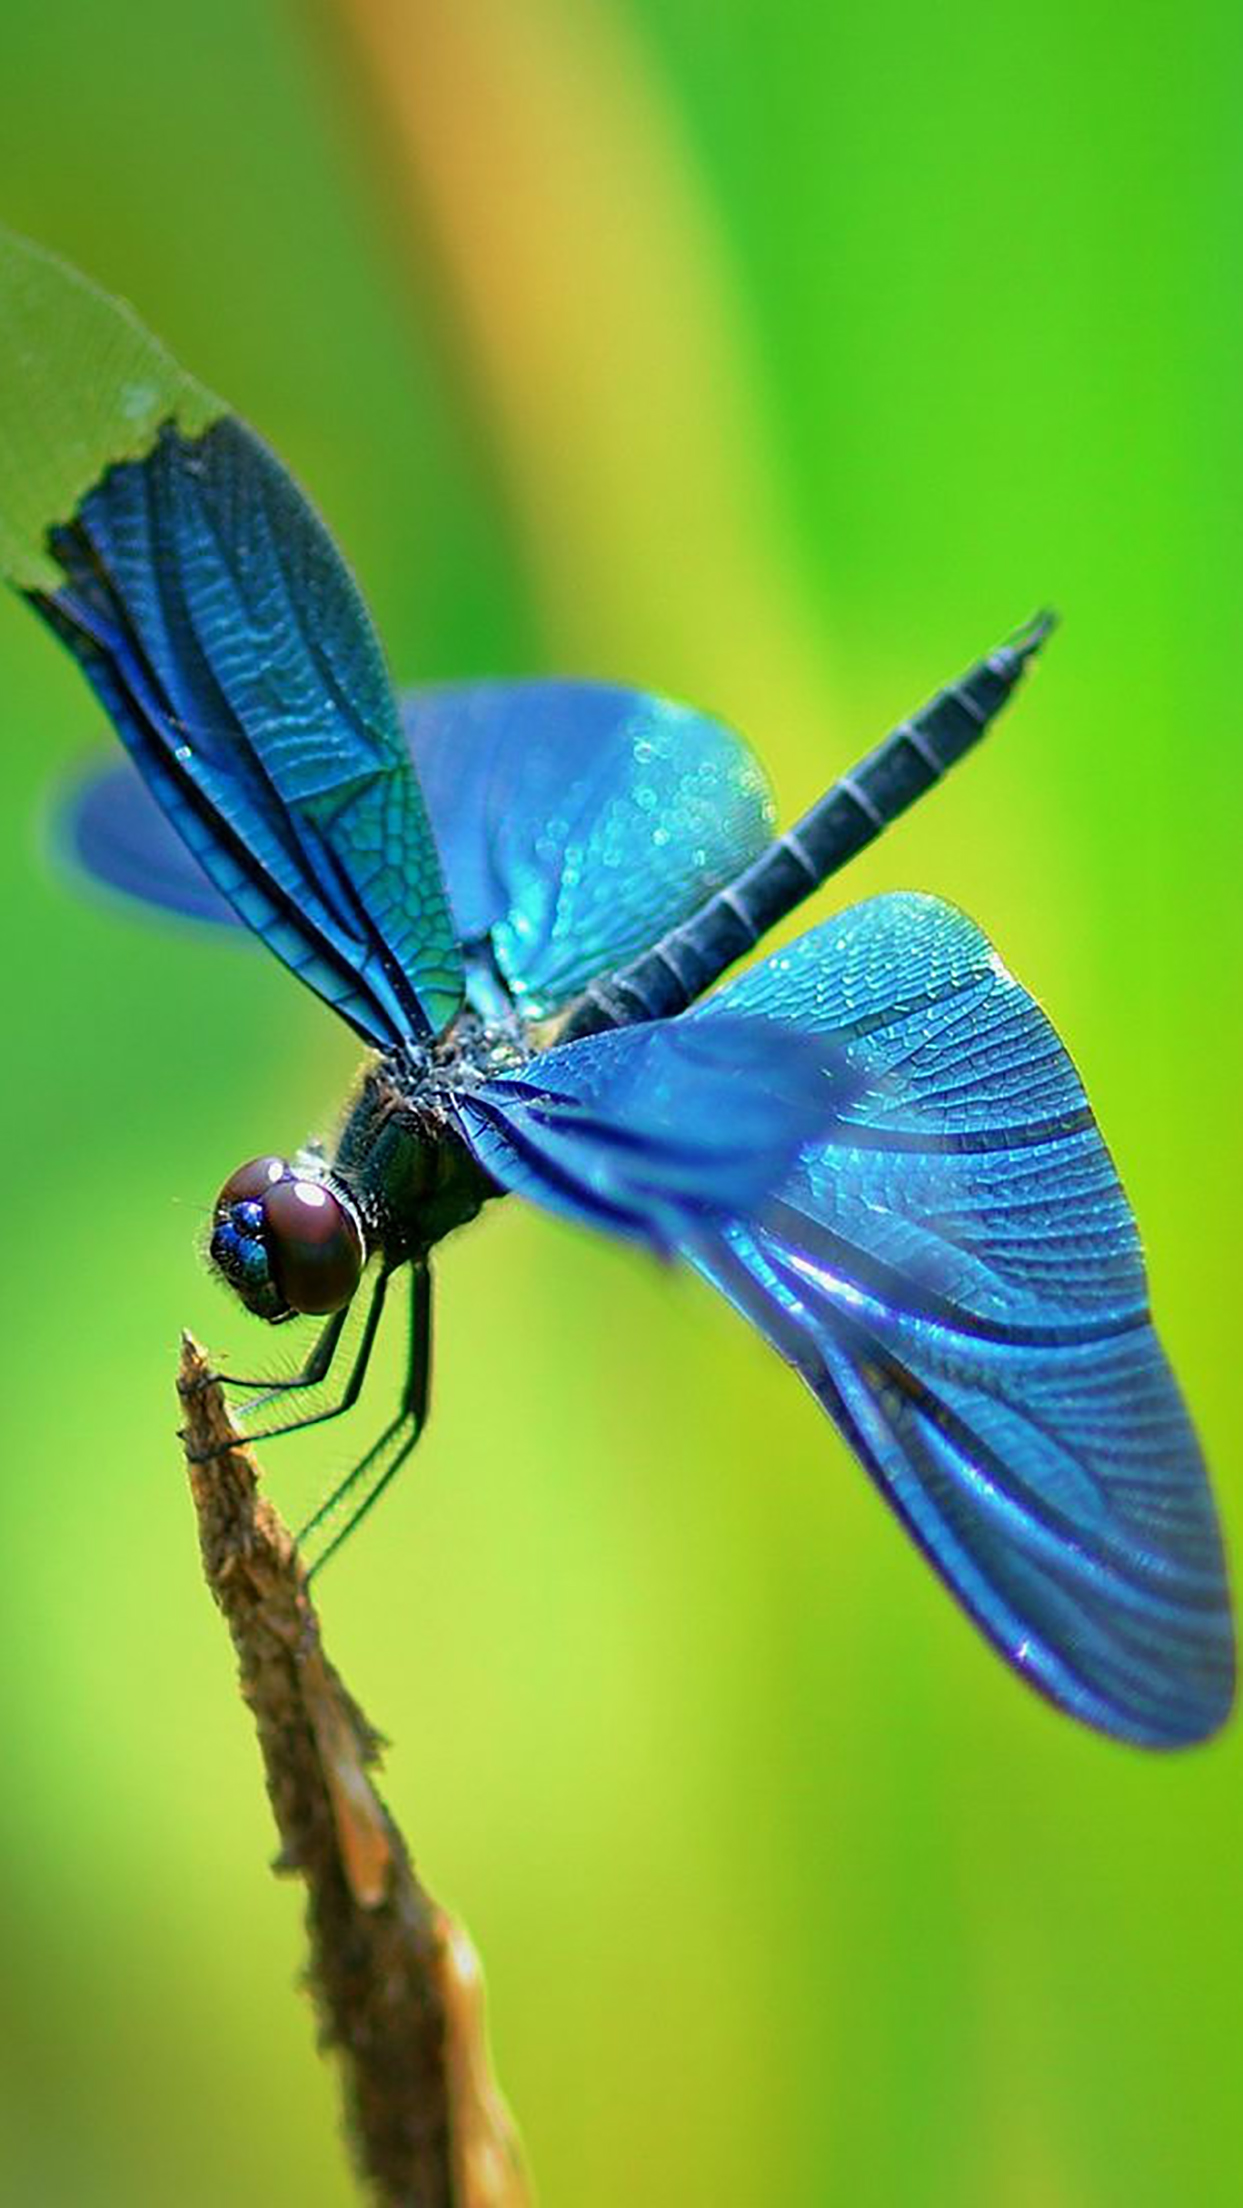 Insect Dragonfly 3Wallpapers iPhone Parallax Insect : Dragonfly